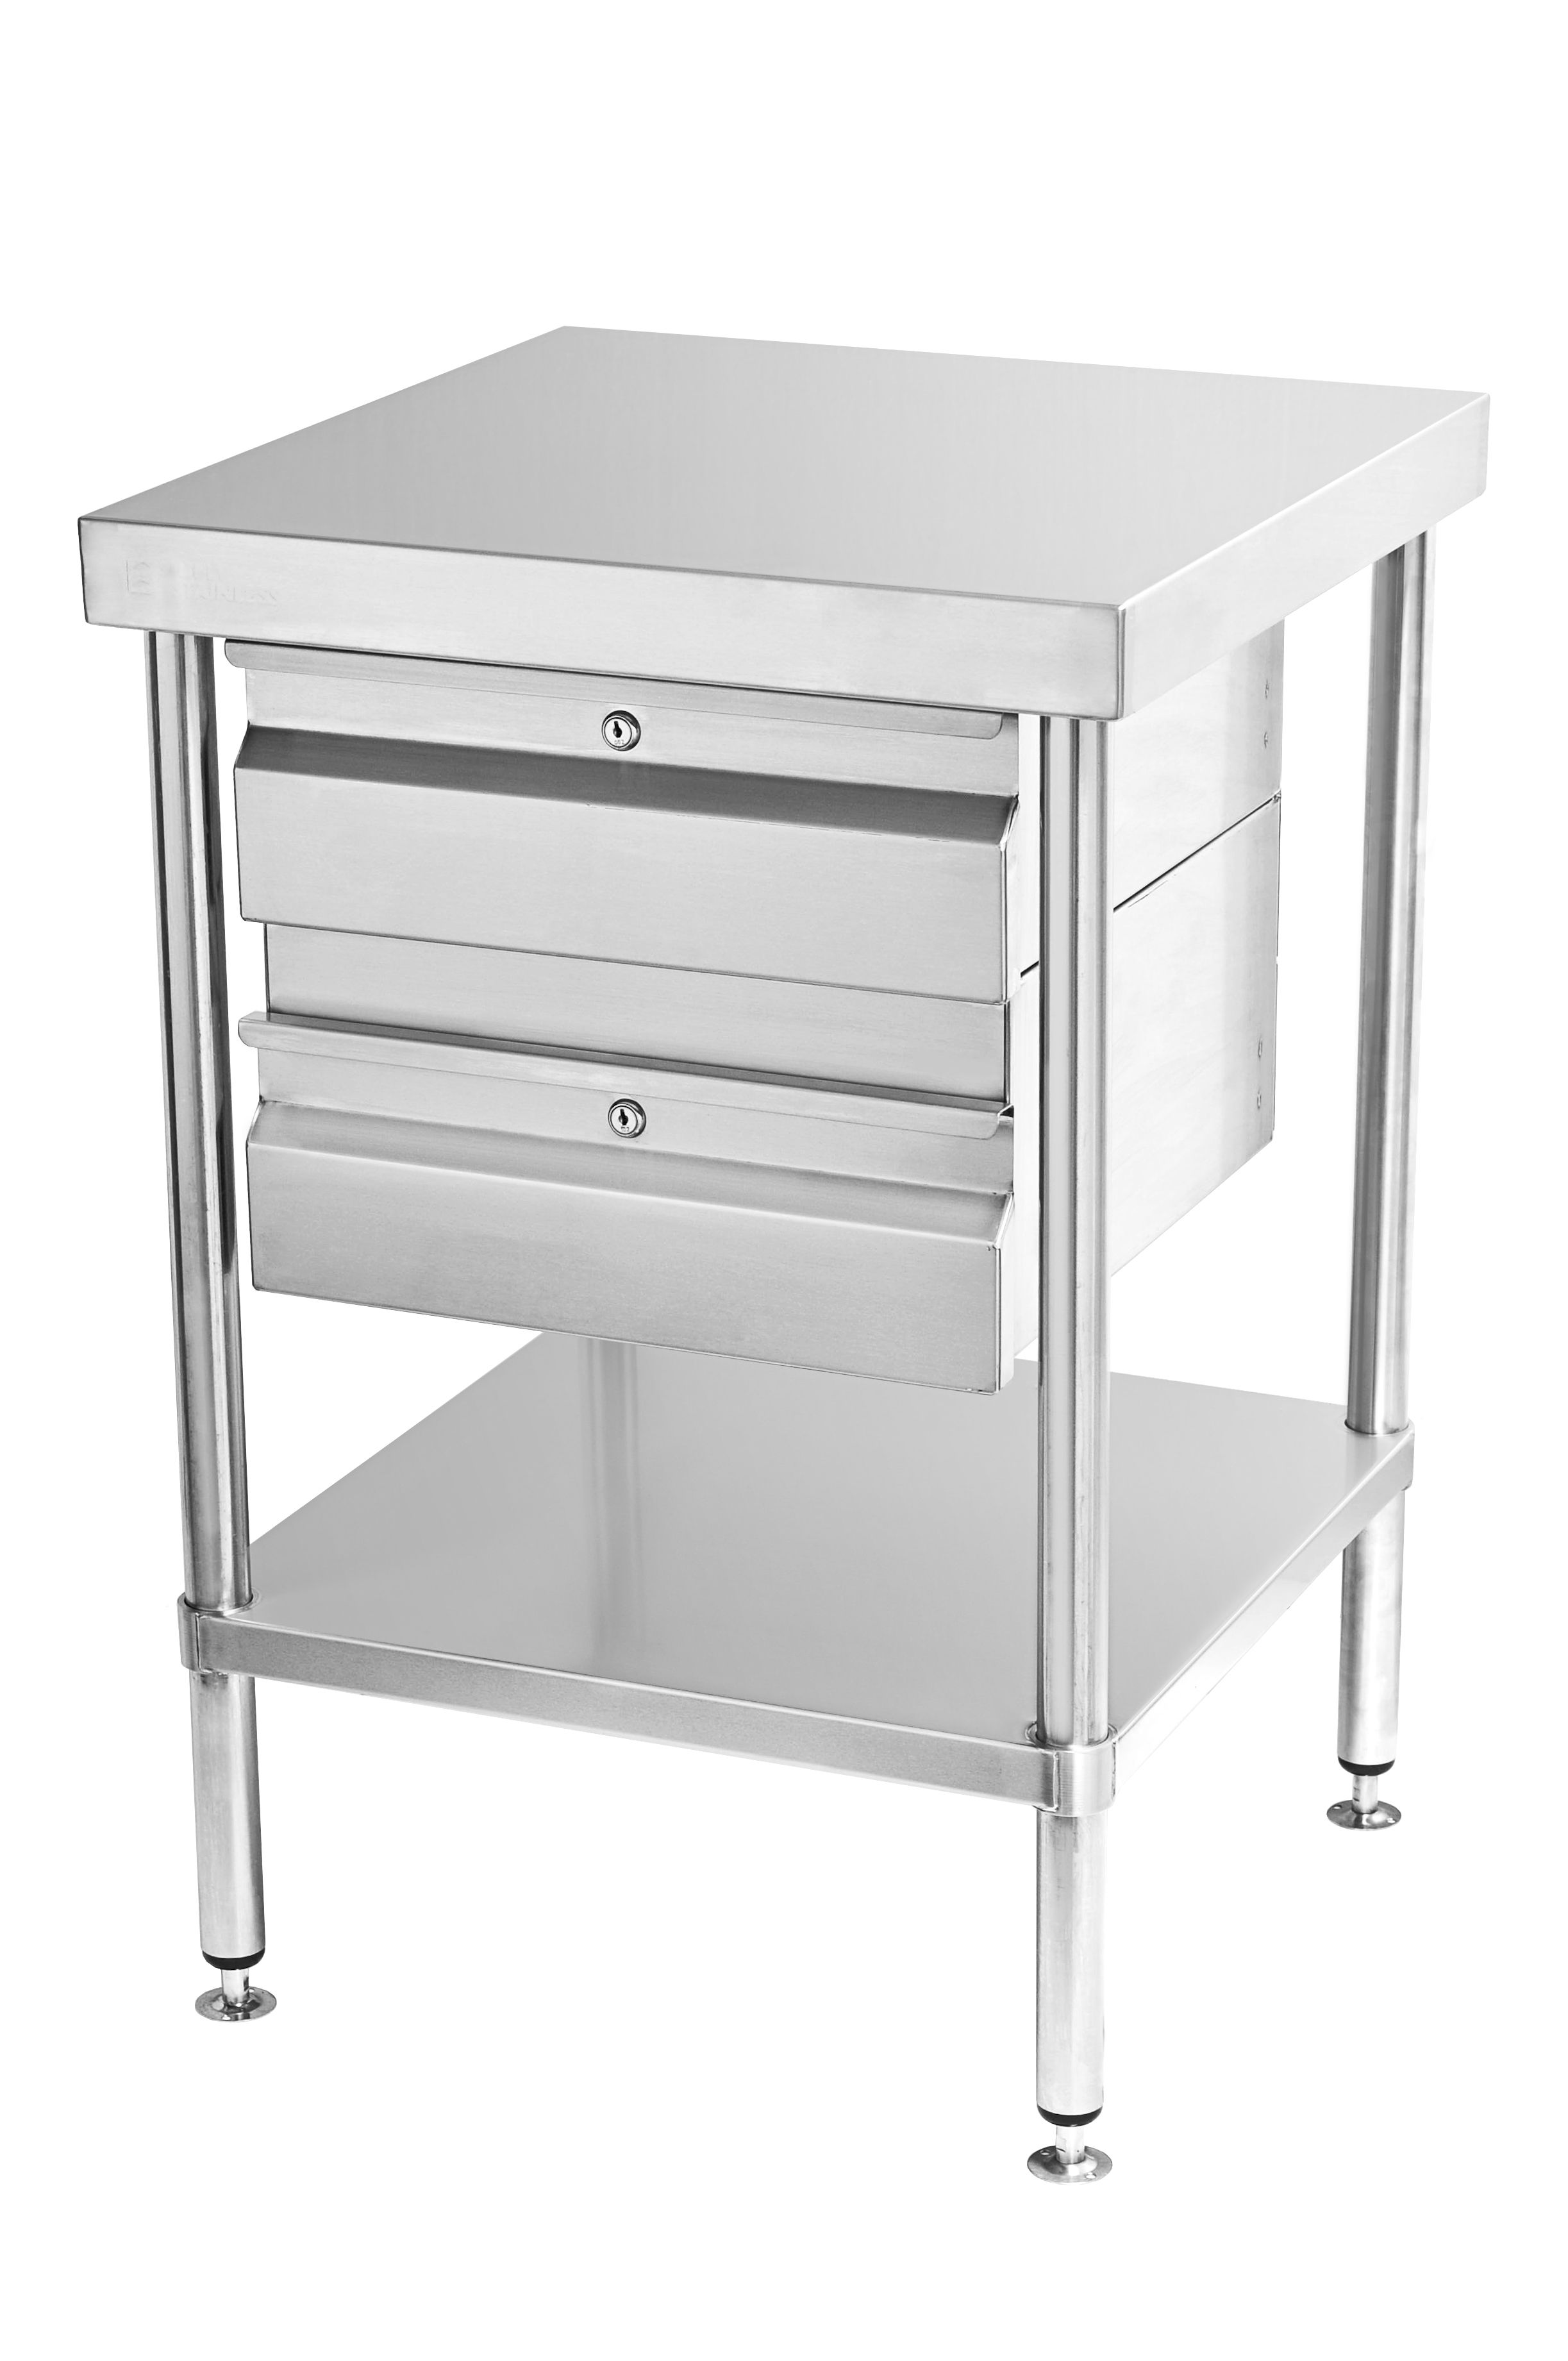 Simply Stainless Ss01 Double Drawers Steel Fabrication Stainless Steel Fabrication Stainless